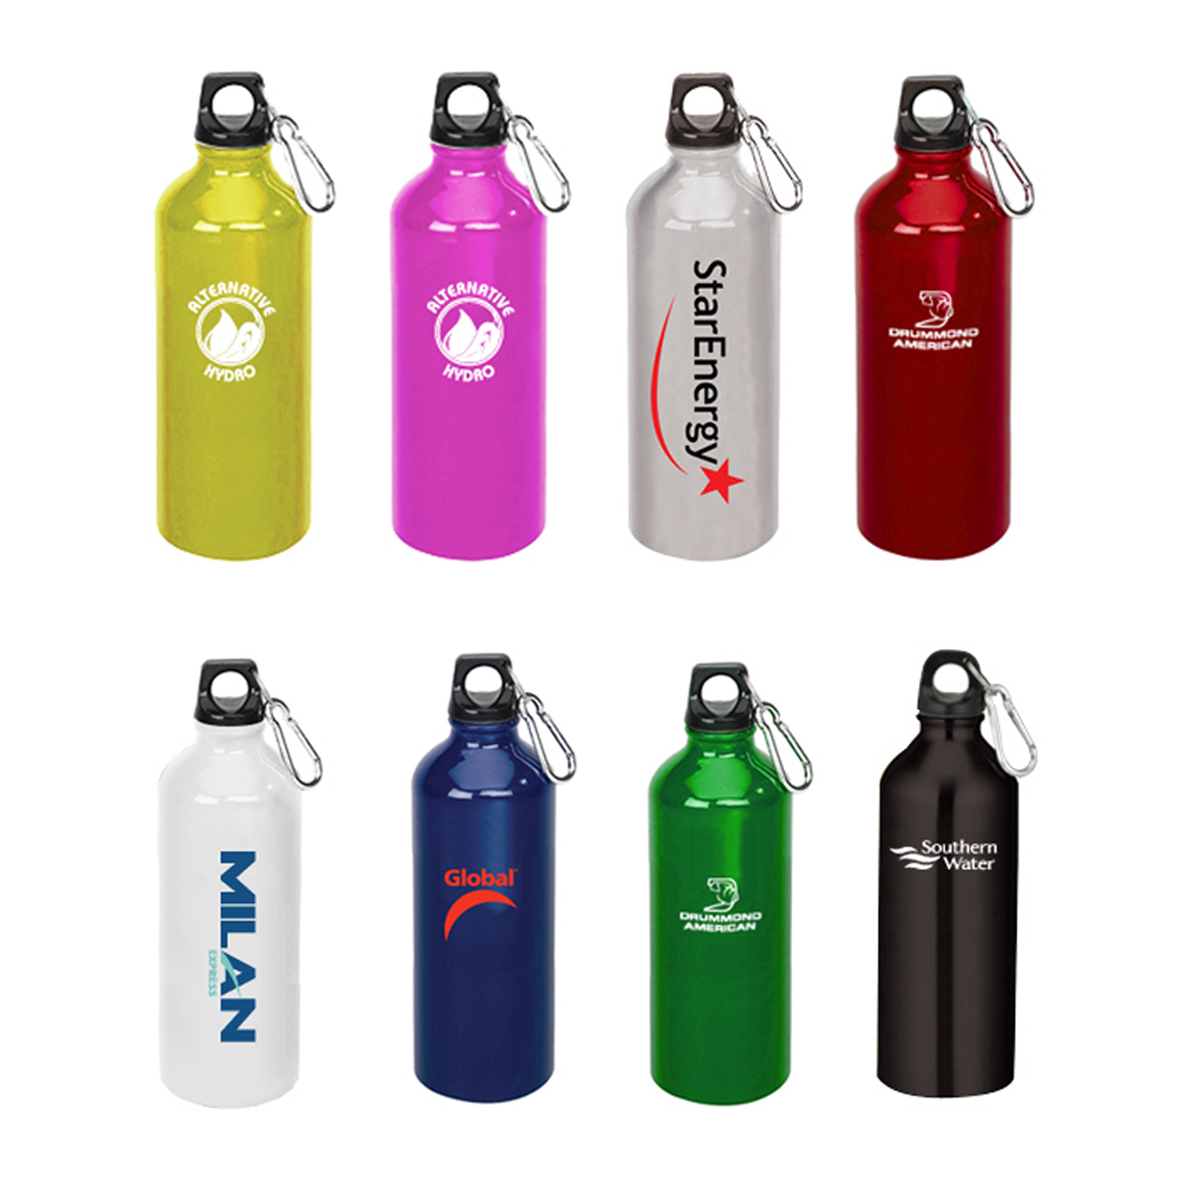 HERMES ALUMINUM WATER BOTTLE